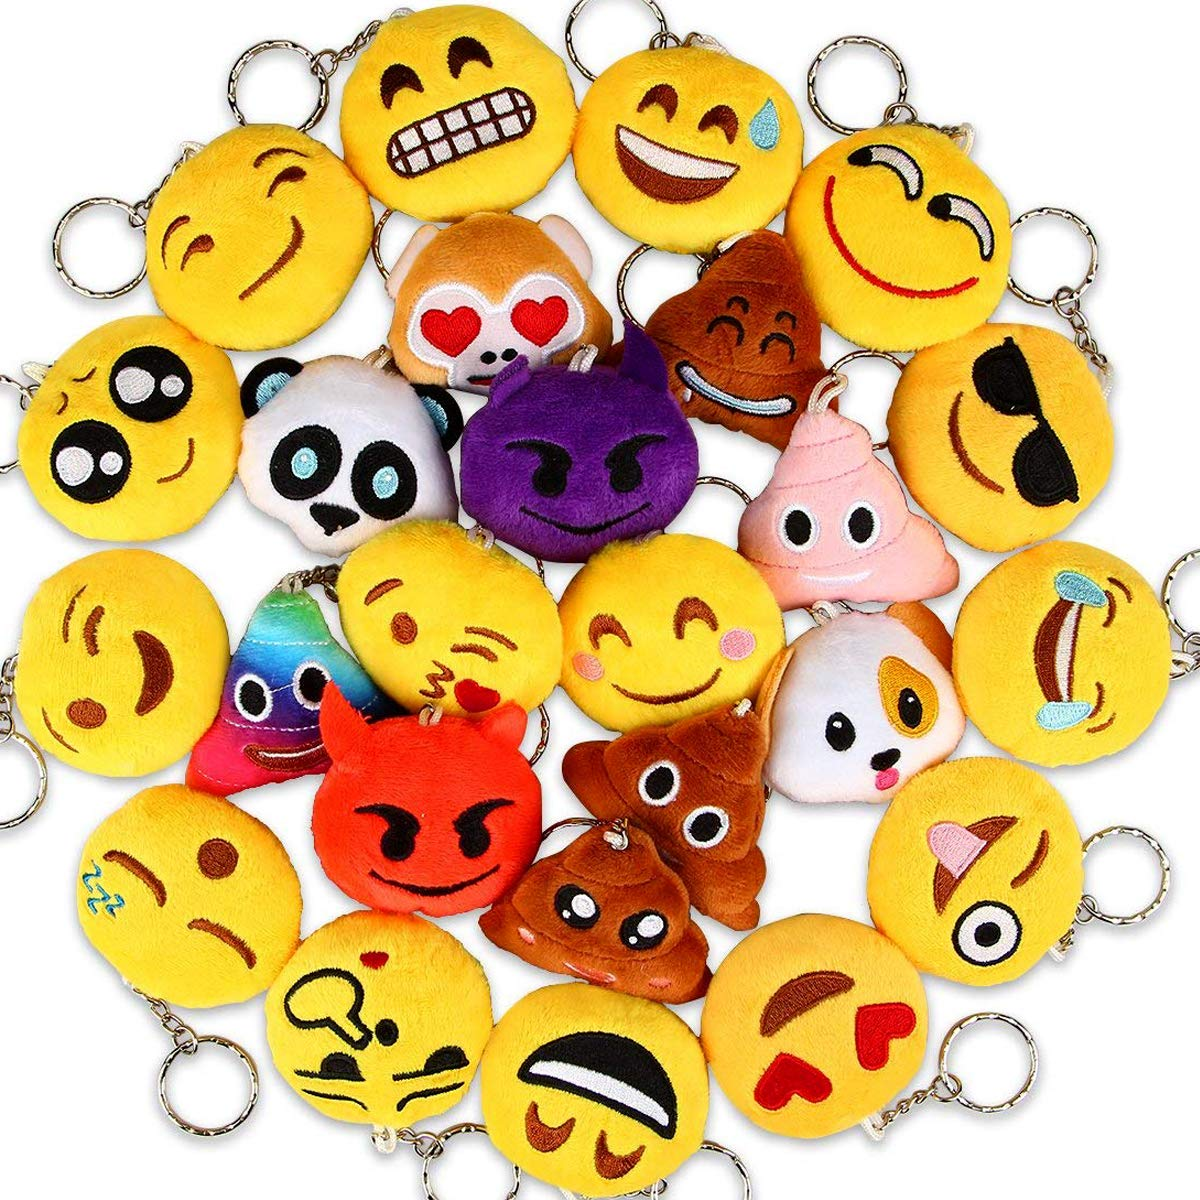 Dreampark Emoji Keychains Mini Poop Emoji Key Chain Plush Pillows for Kids Party Favors/Birthday Party Supplies - Christmas Party Decorations 2'' Set of 25